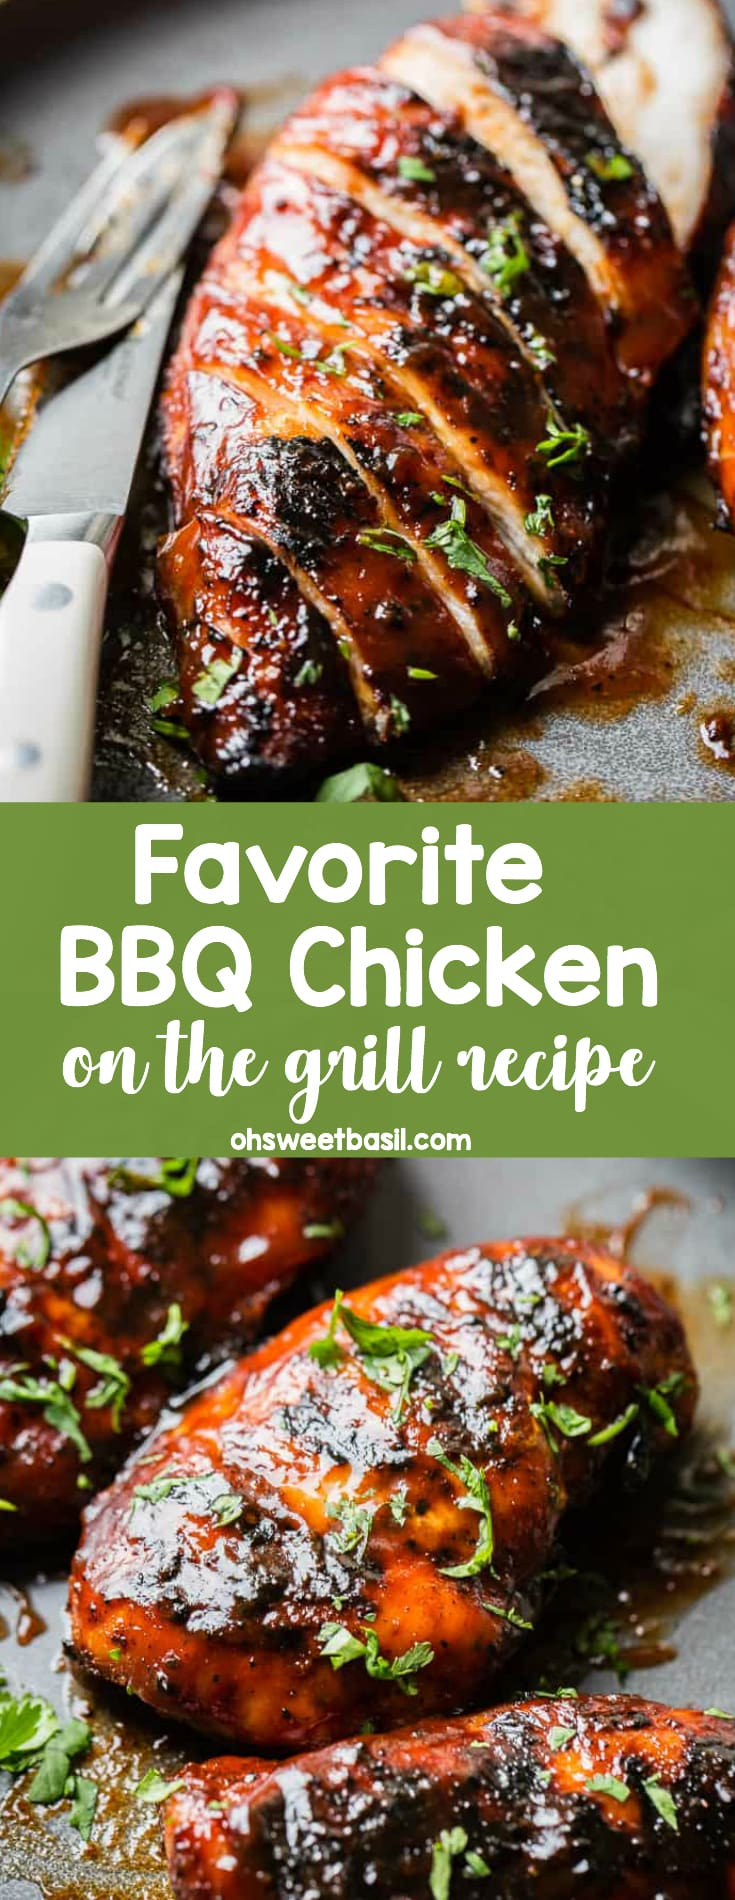 A grey plate with a sliced BBQ chicken sprinkled with parsley. This is our favorite BBQ Chicken Recipe.